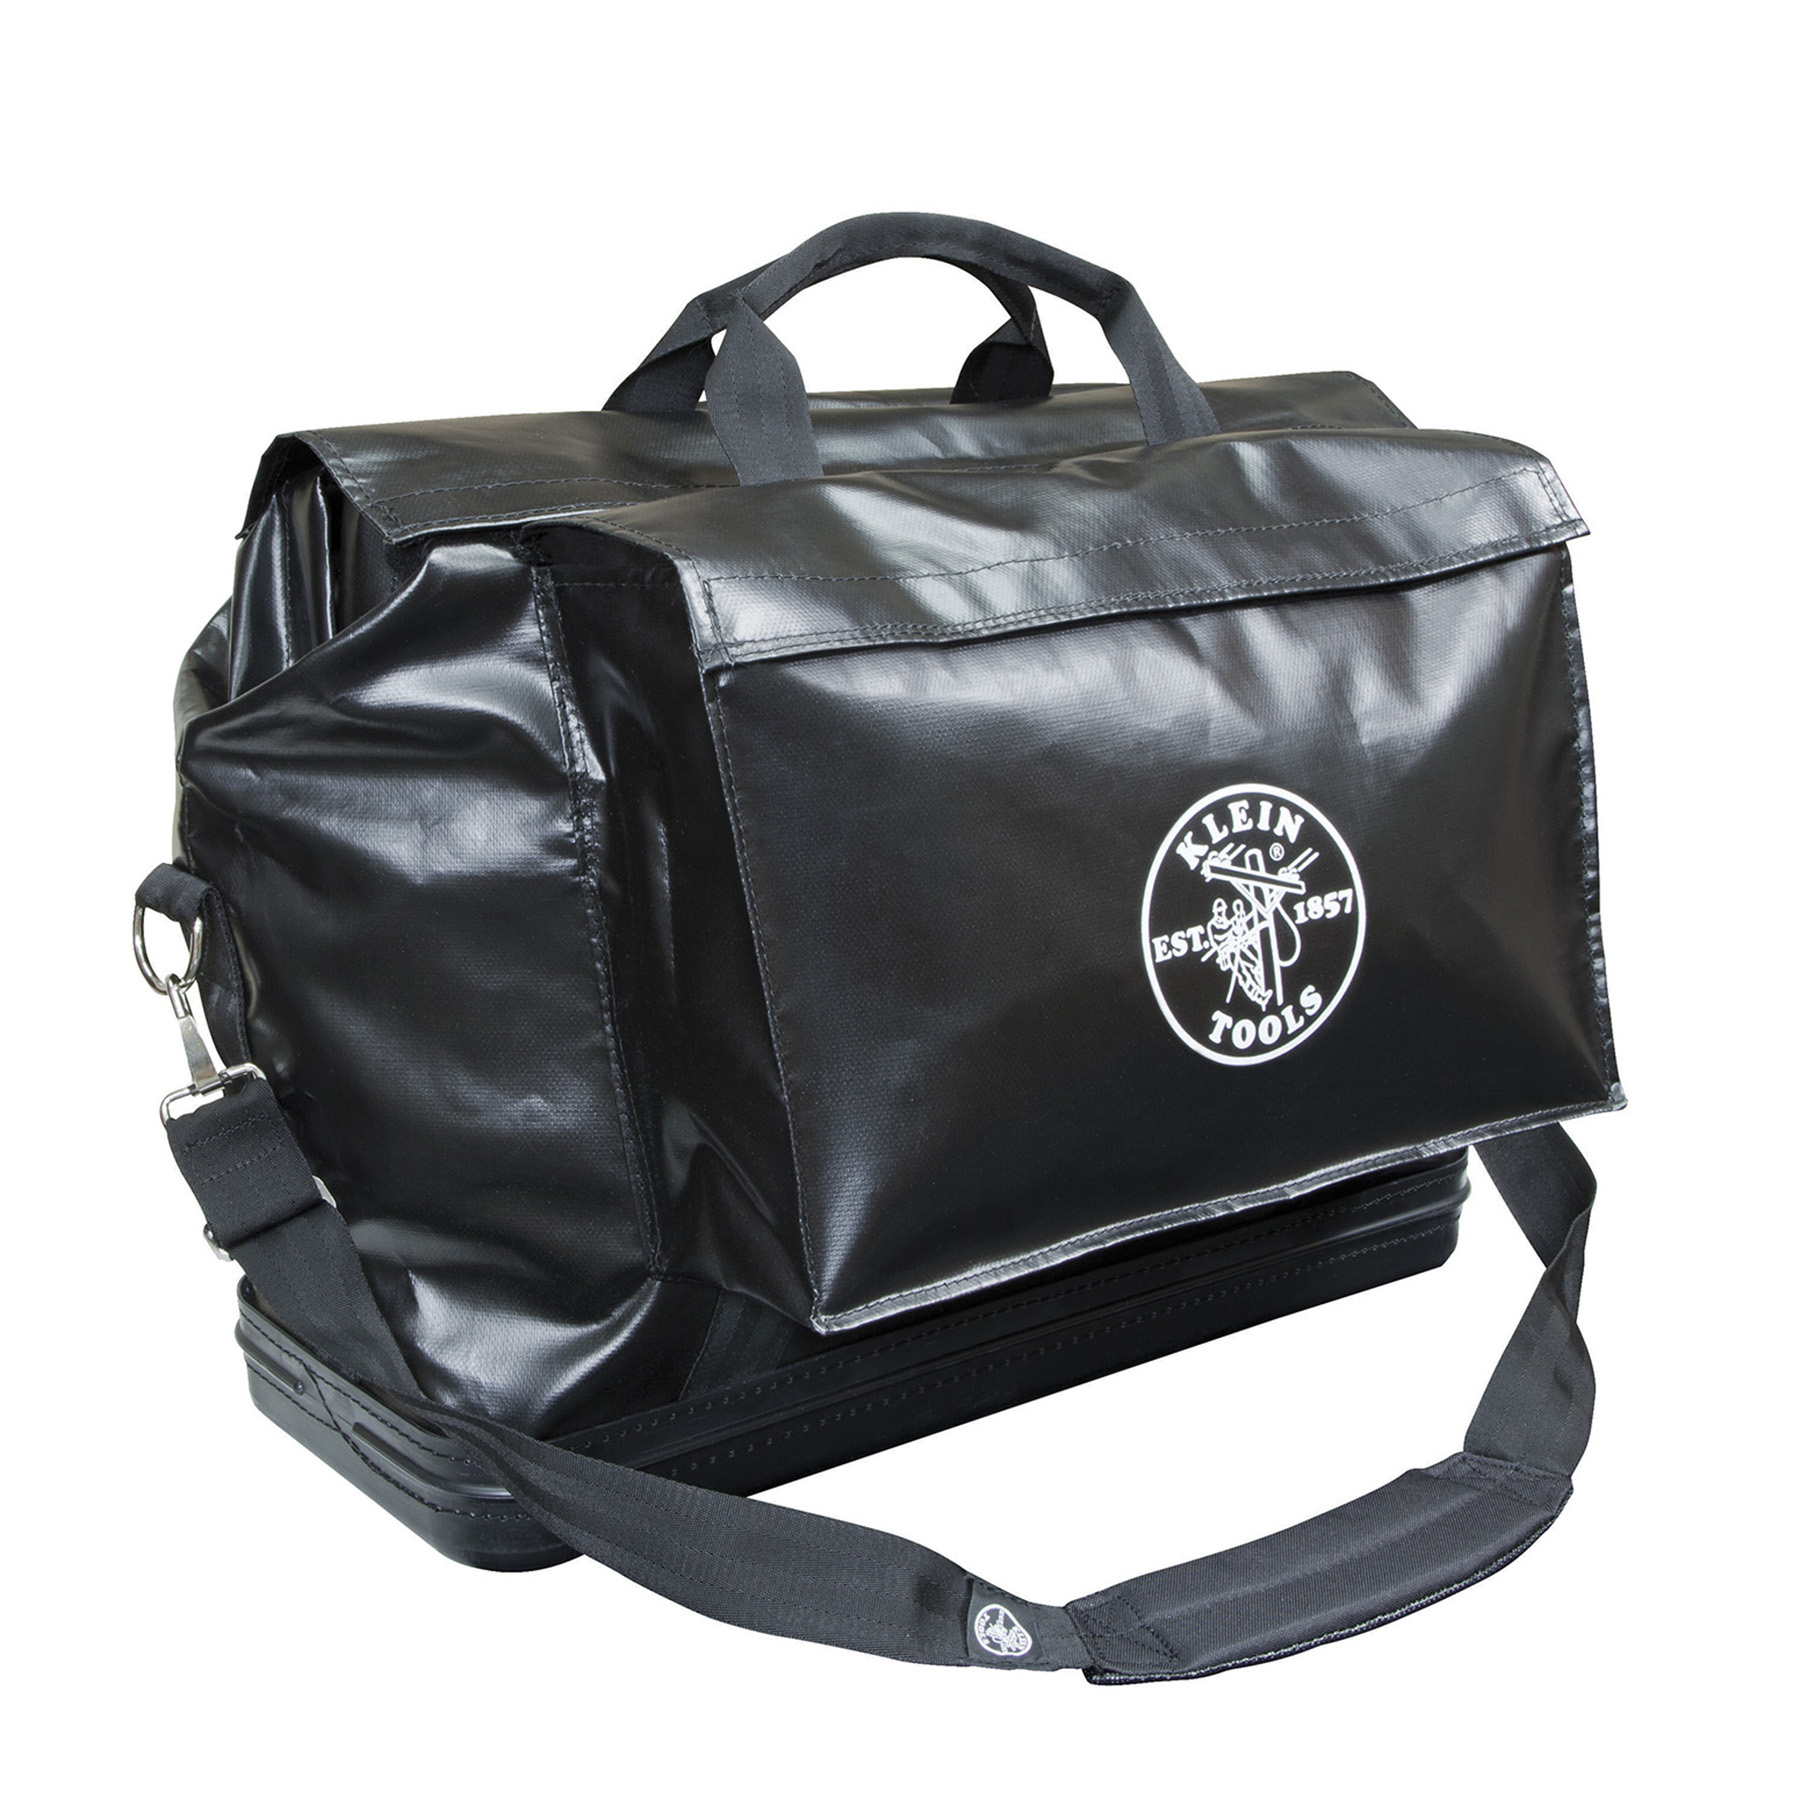 "Klein Vinyl Equipment Bags 20"" H x 24"" L x 10"" W. 2 Outside Pockets, rain flap, should strap."